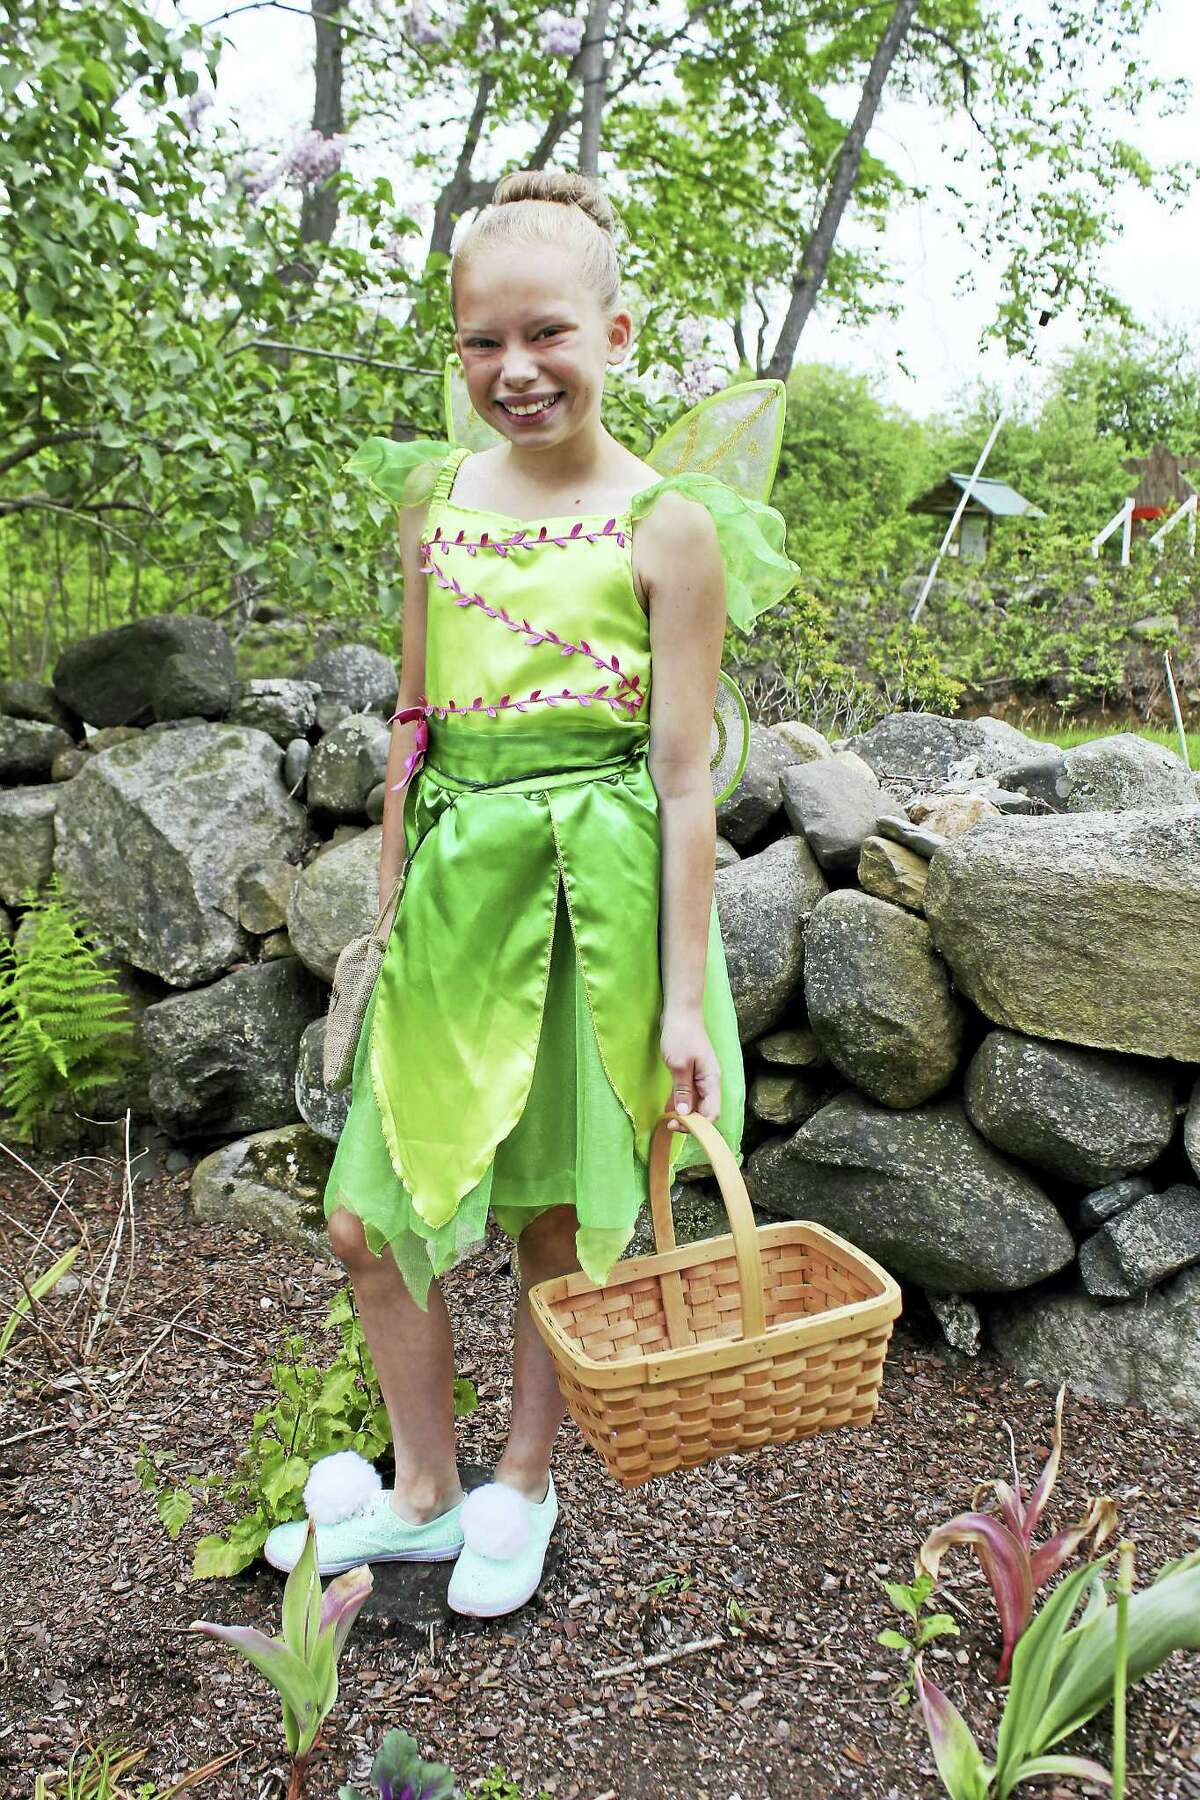 Children can spend the day in the company of fairies and wizards on Saturday at Flanders Nature Center in Woodbury.